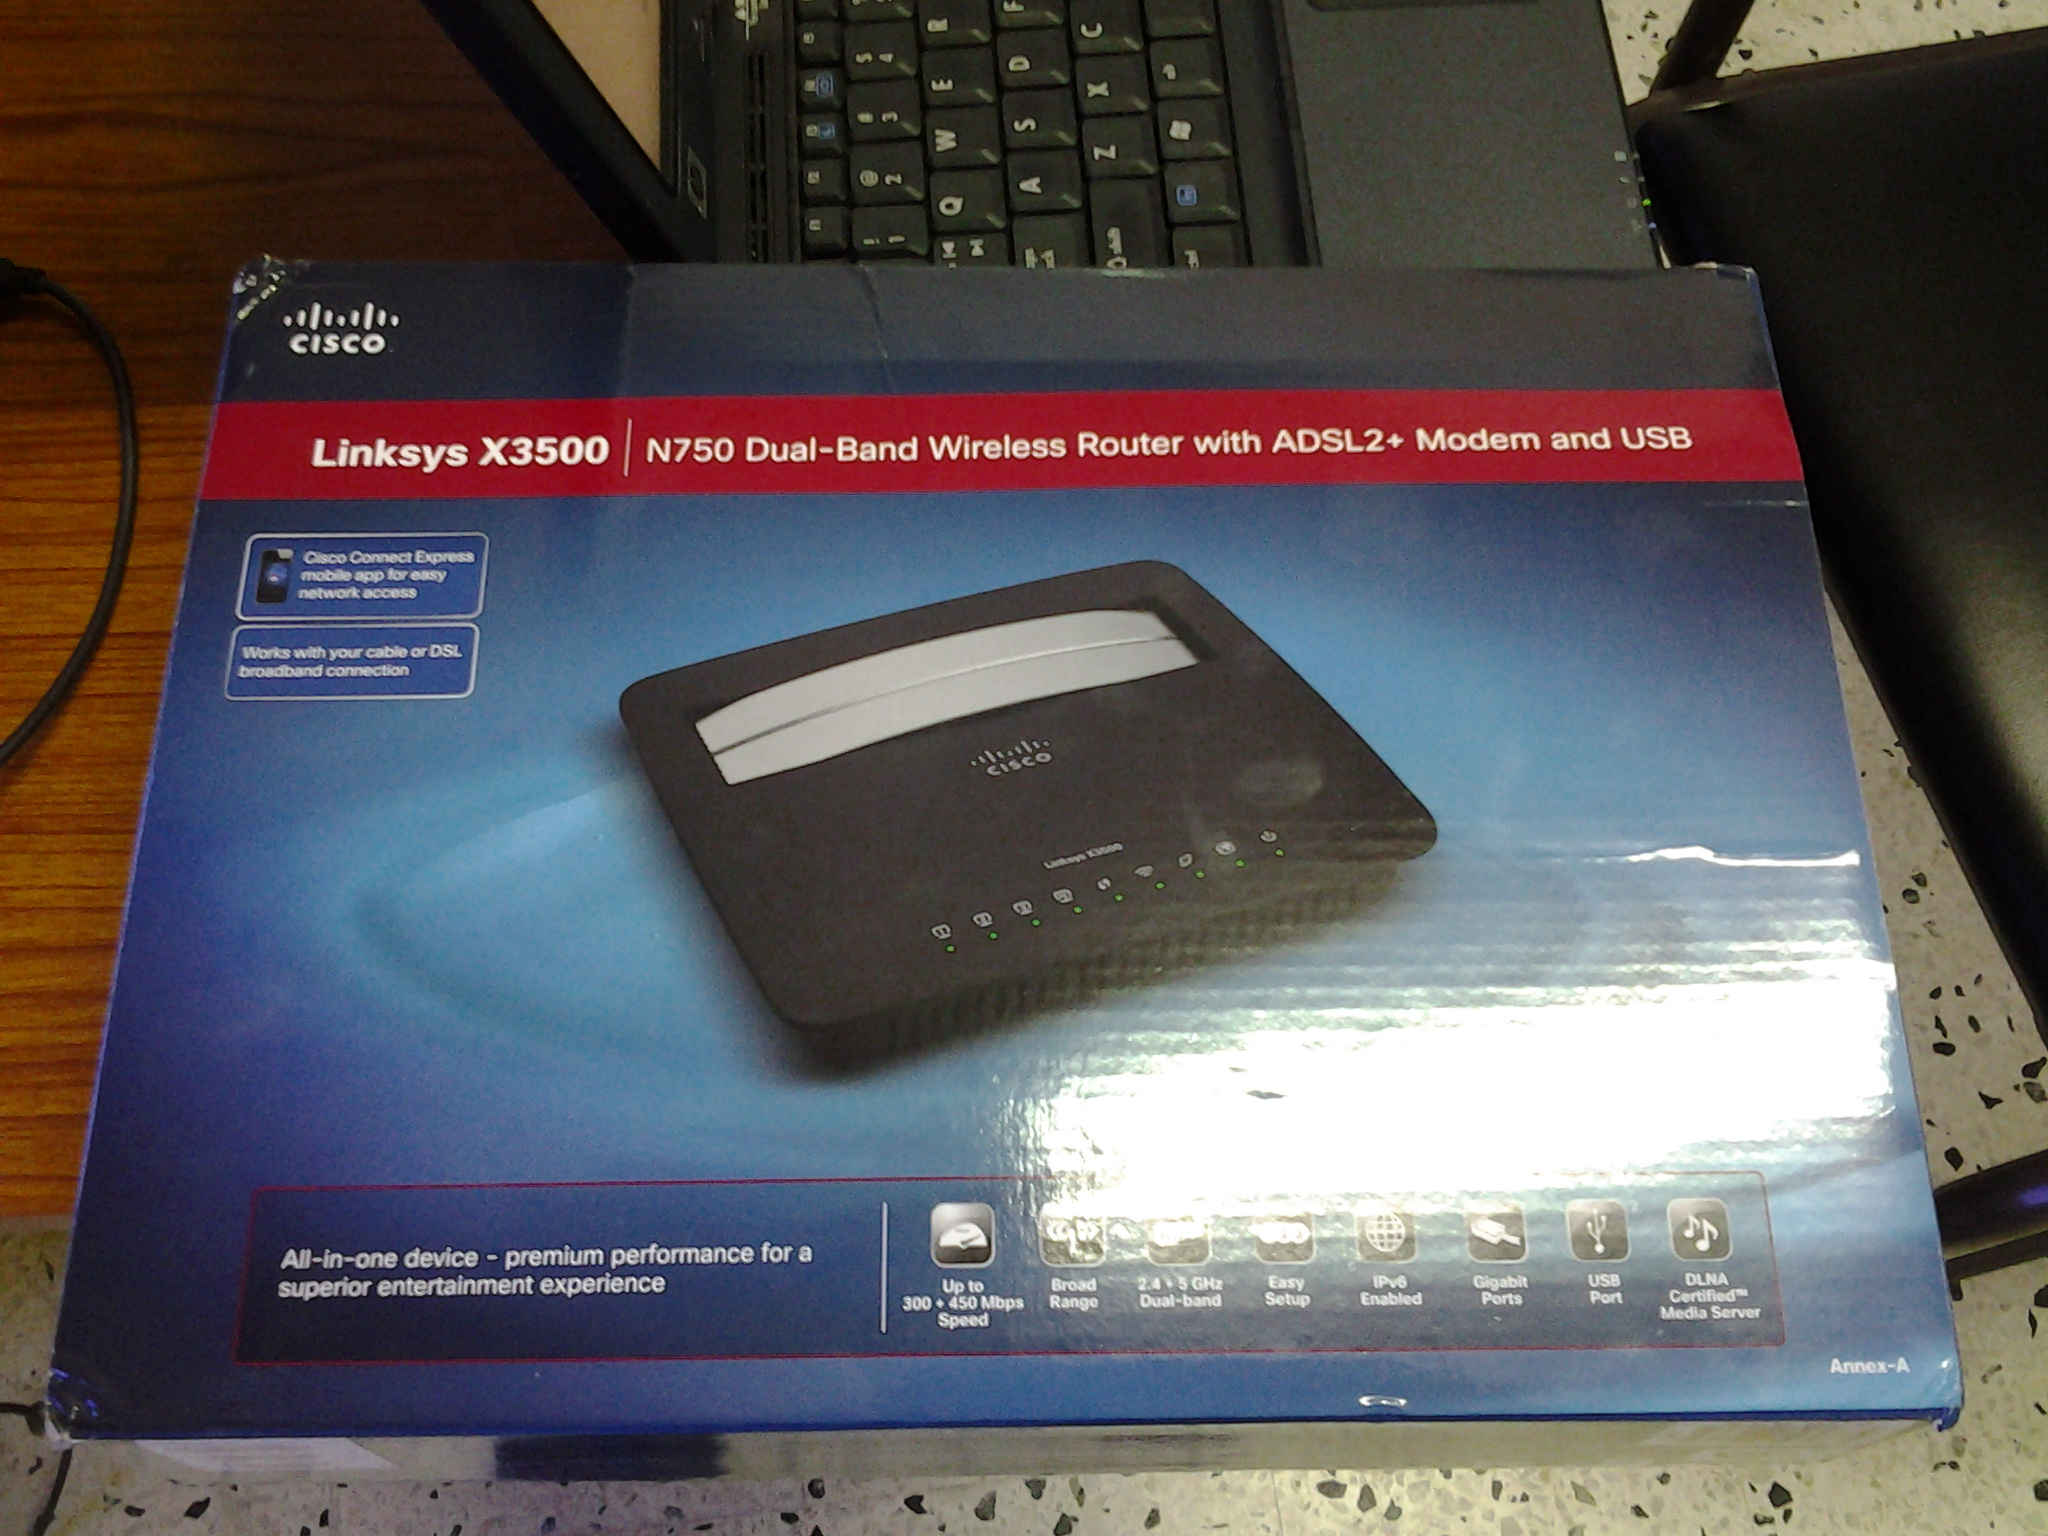 Cisco Linksys X3500 review: the ultimate all-in-one home router ...